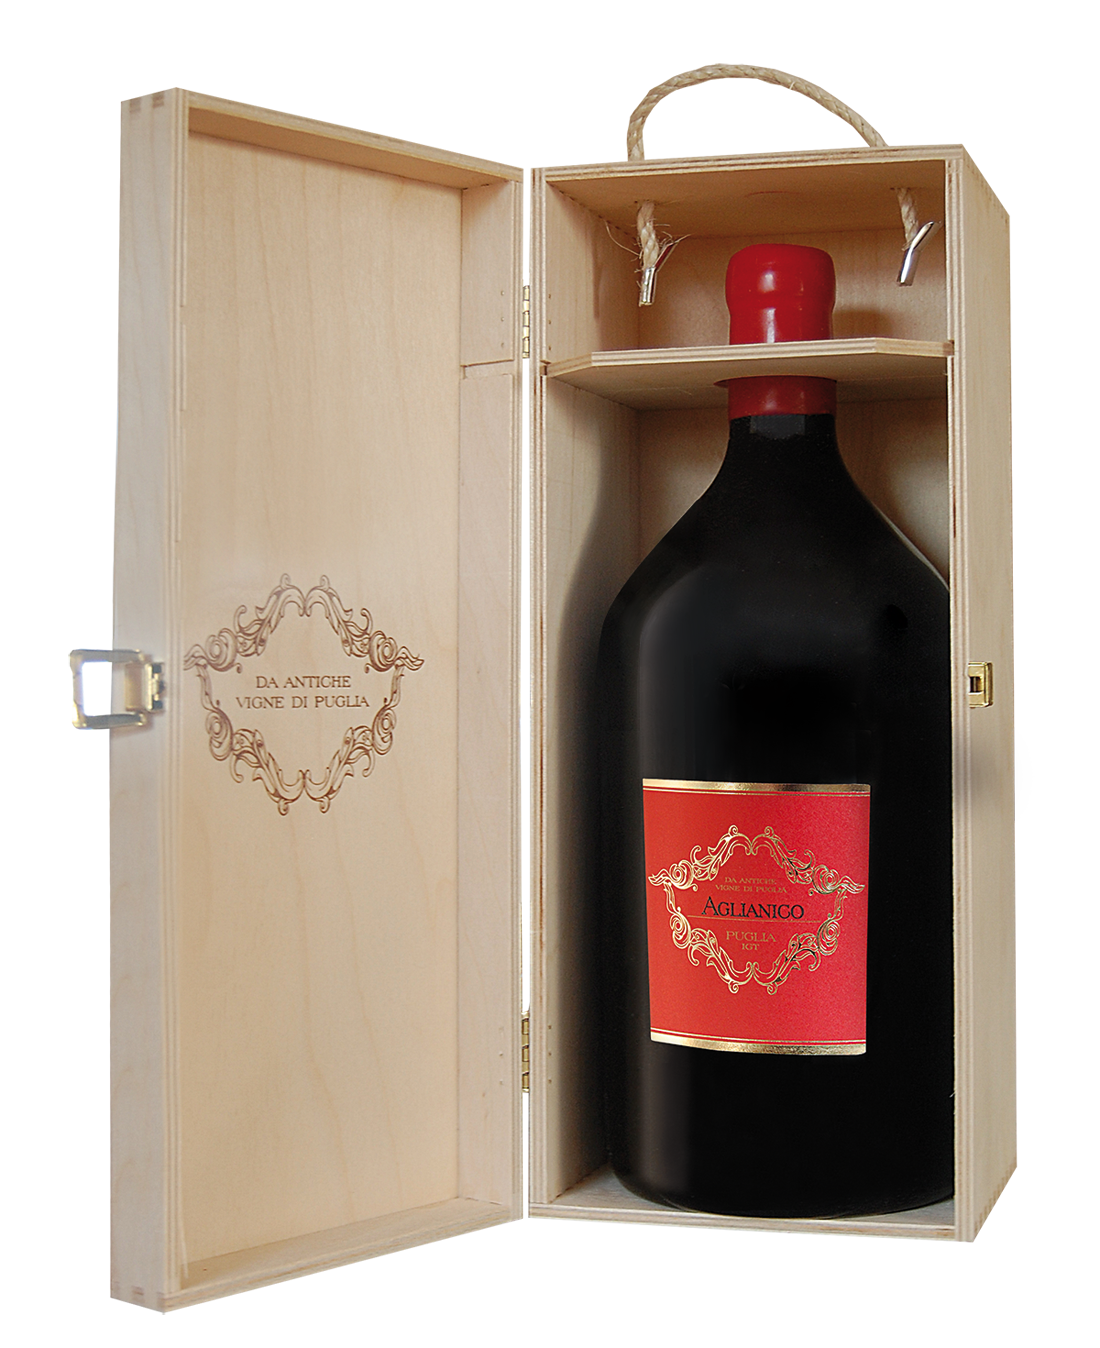 Rotwein Torrevento Aglianico 3l Doppelmagnum in Holzkiste Apulien 13,30? pro l